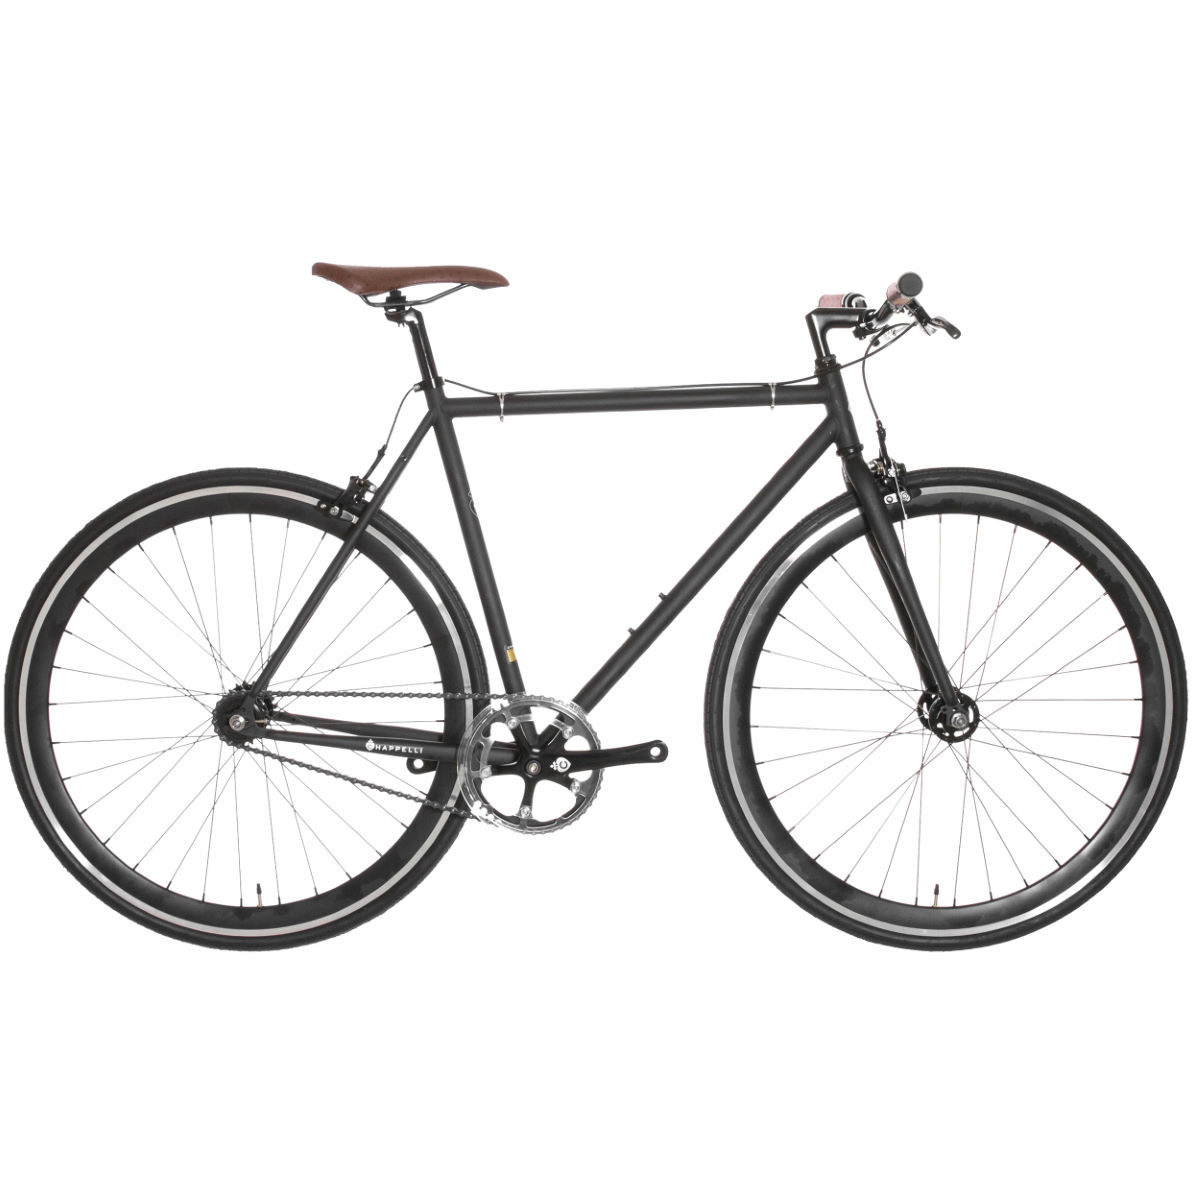 Vélo Chappelli Modern Single Speed (2016) - 54cm Noir/Noir Single speed